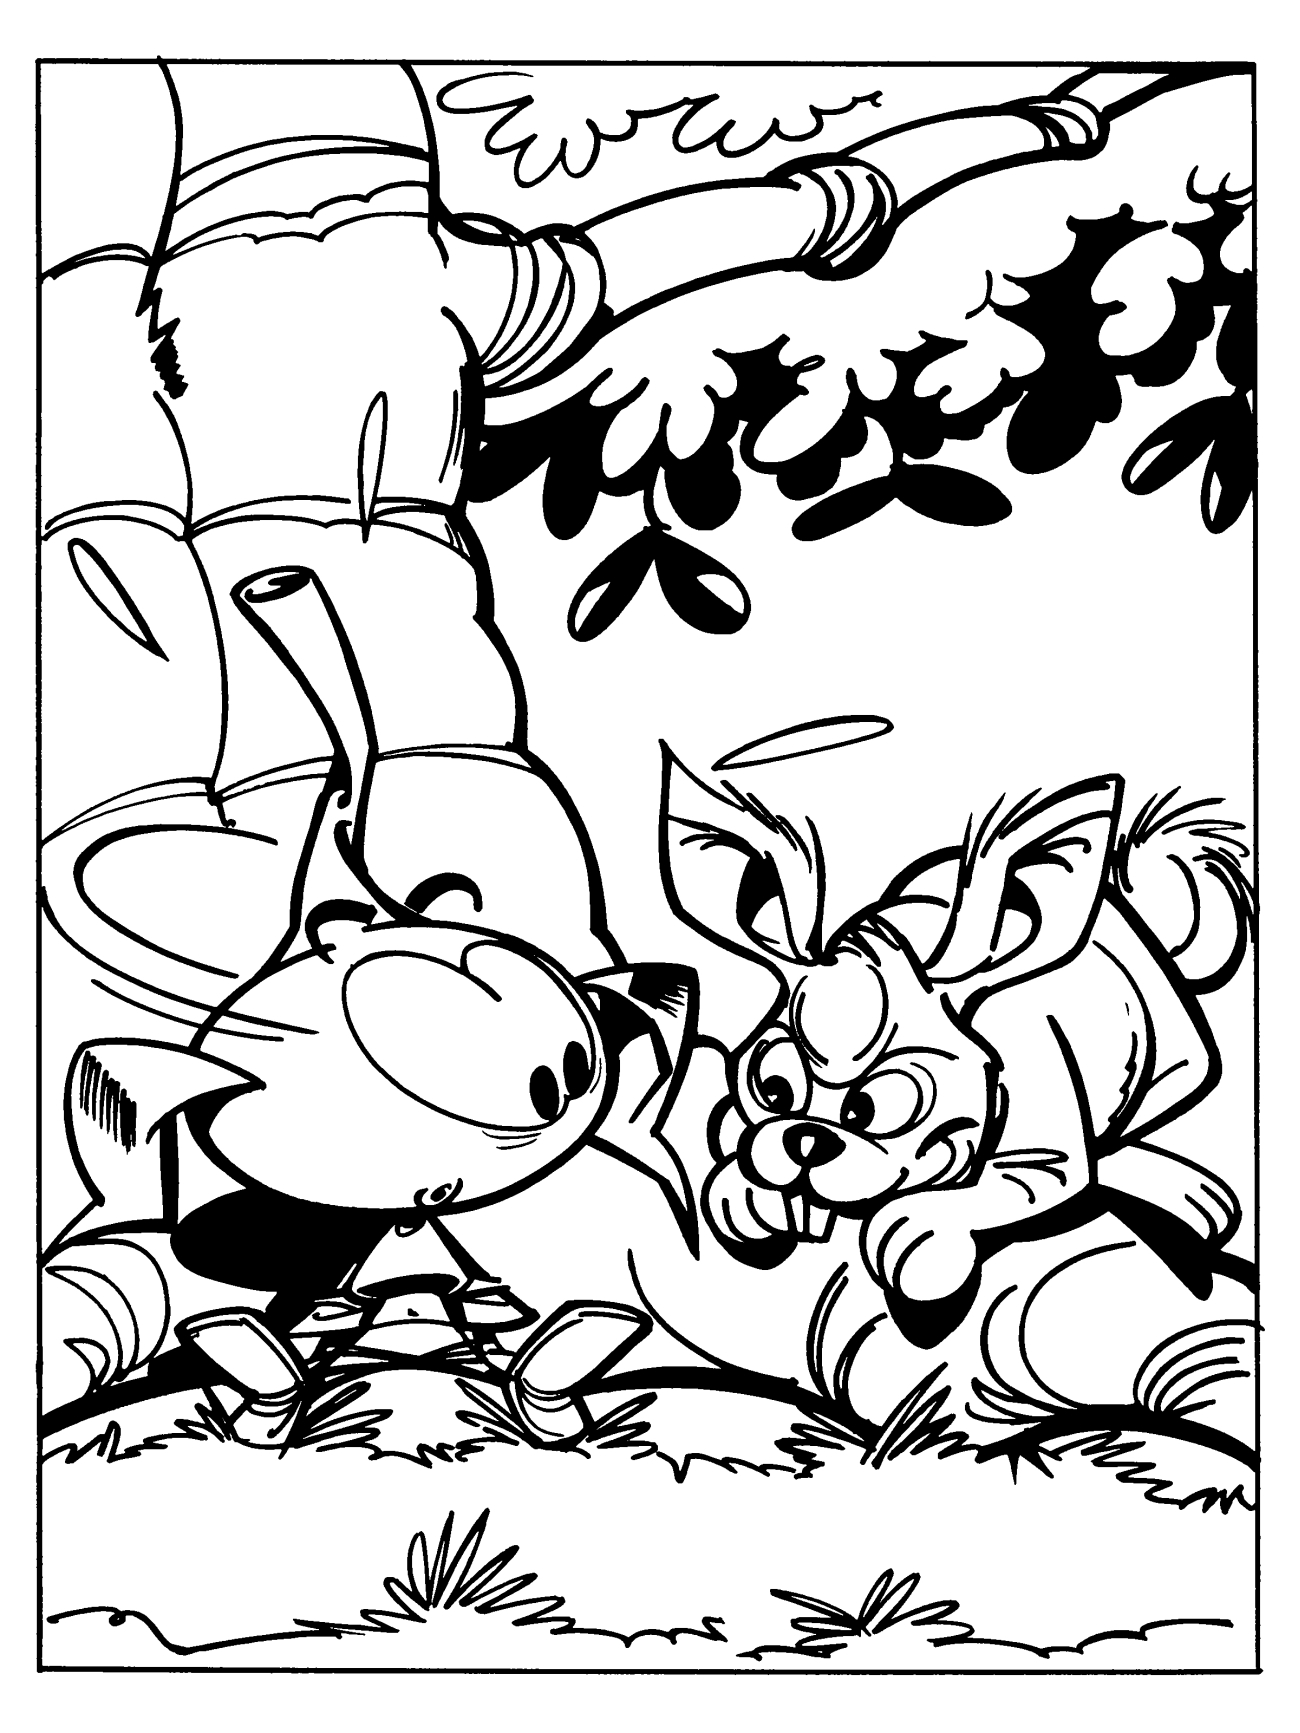 free snorks coloring pages - photo#5